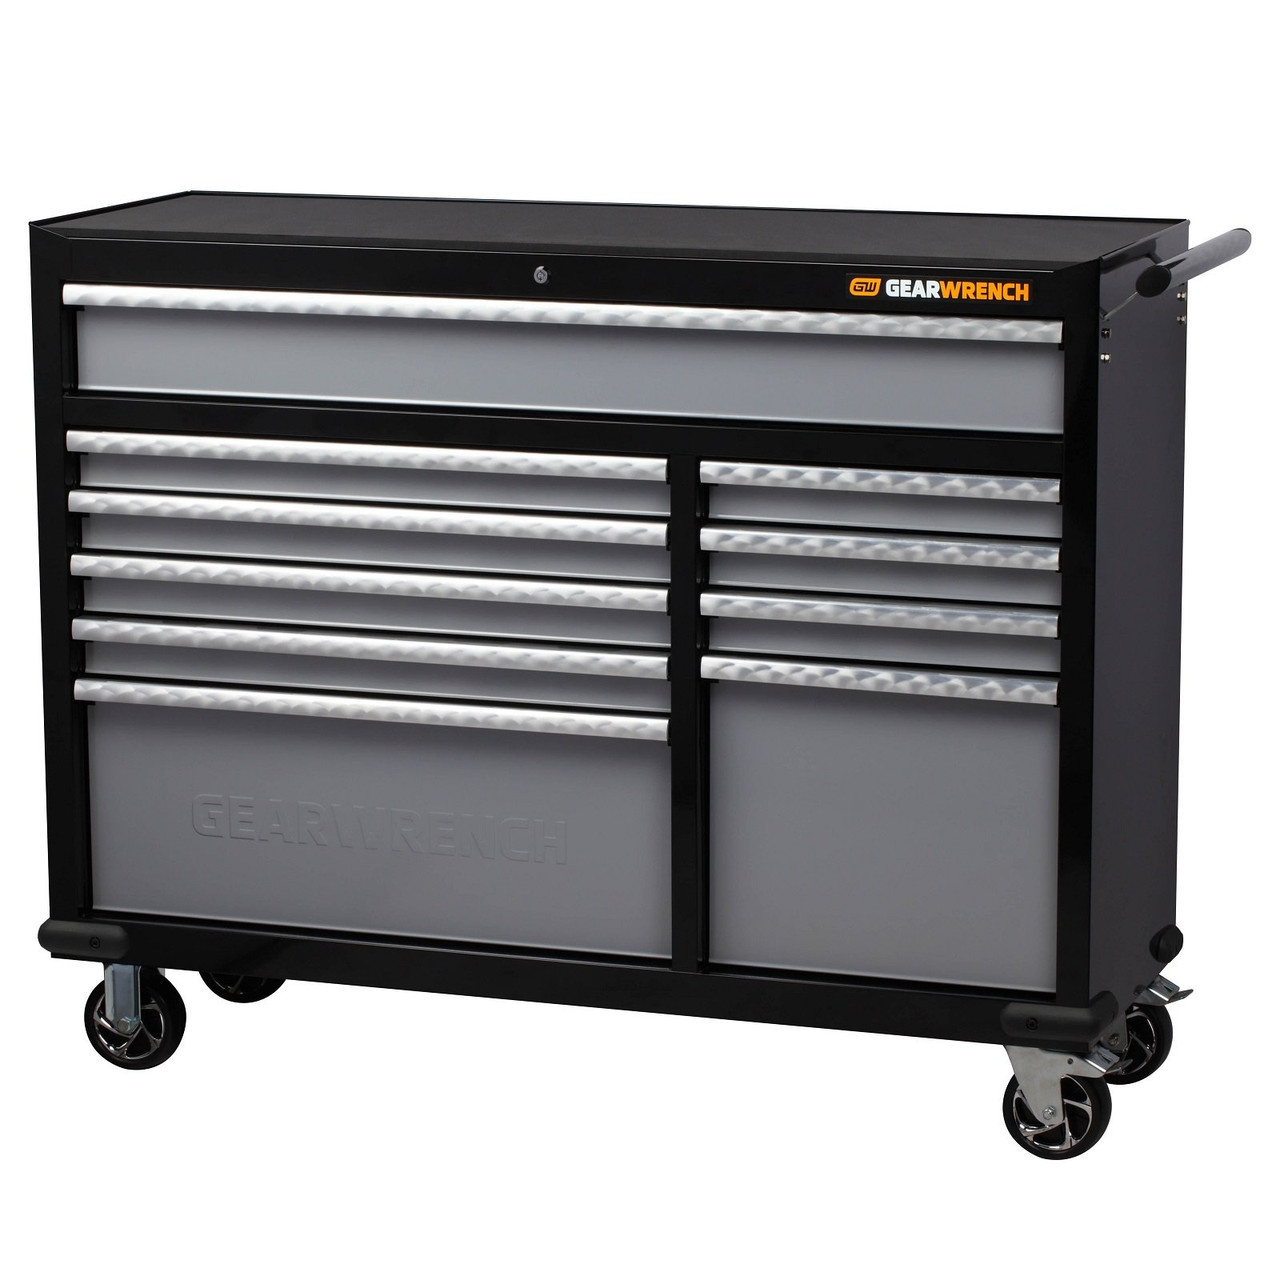 """Gearwrench 649 Pc Combination Tool Kit + 26"""" Tool Chest (x2) & 53"""" Trolley with Side Cabinets (x2)"""